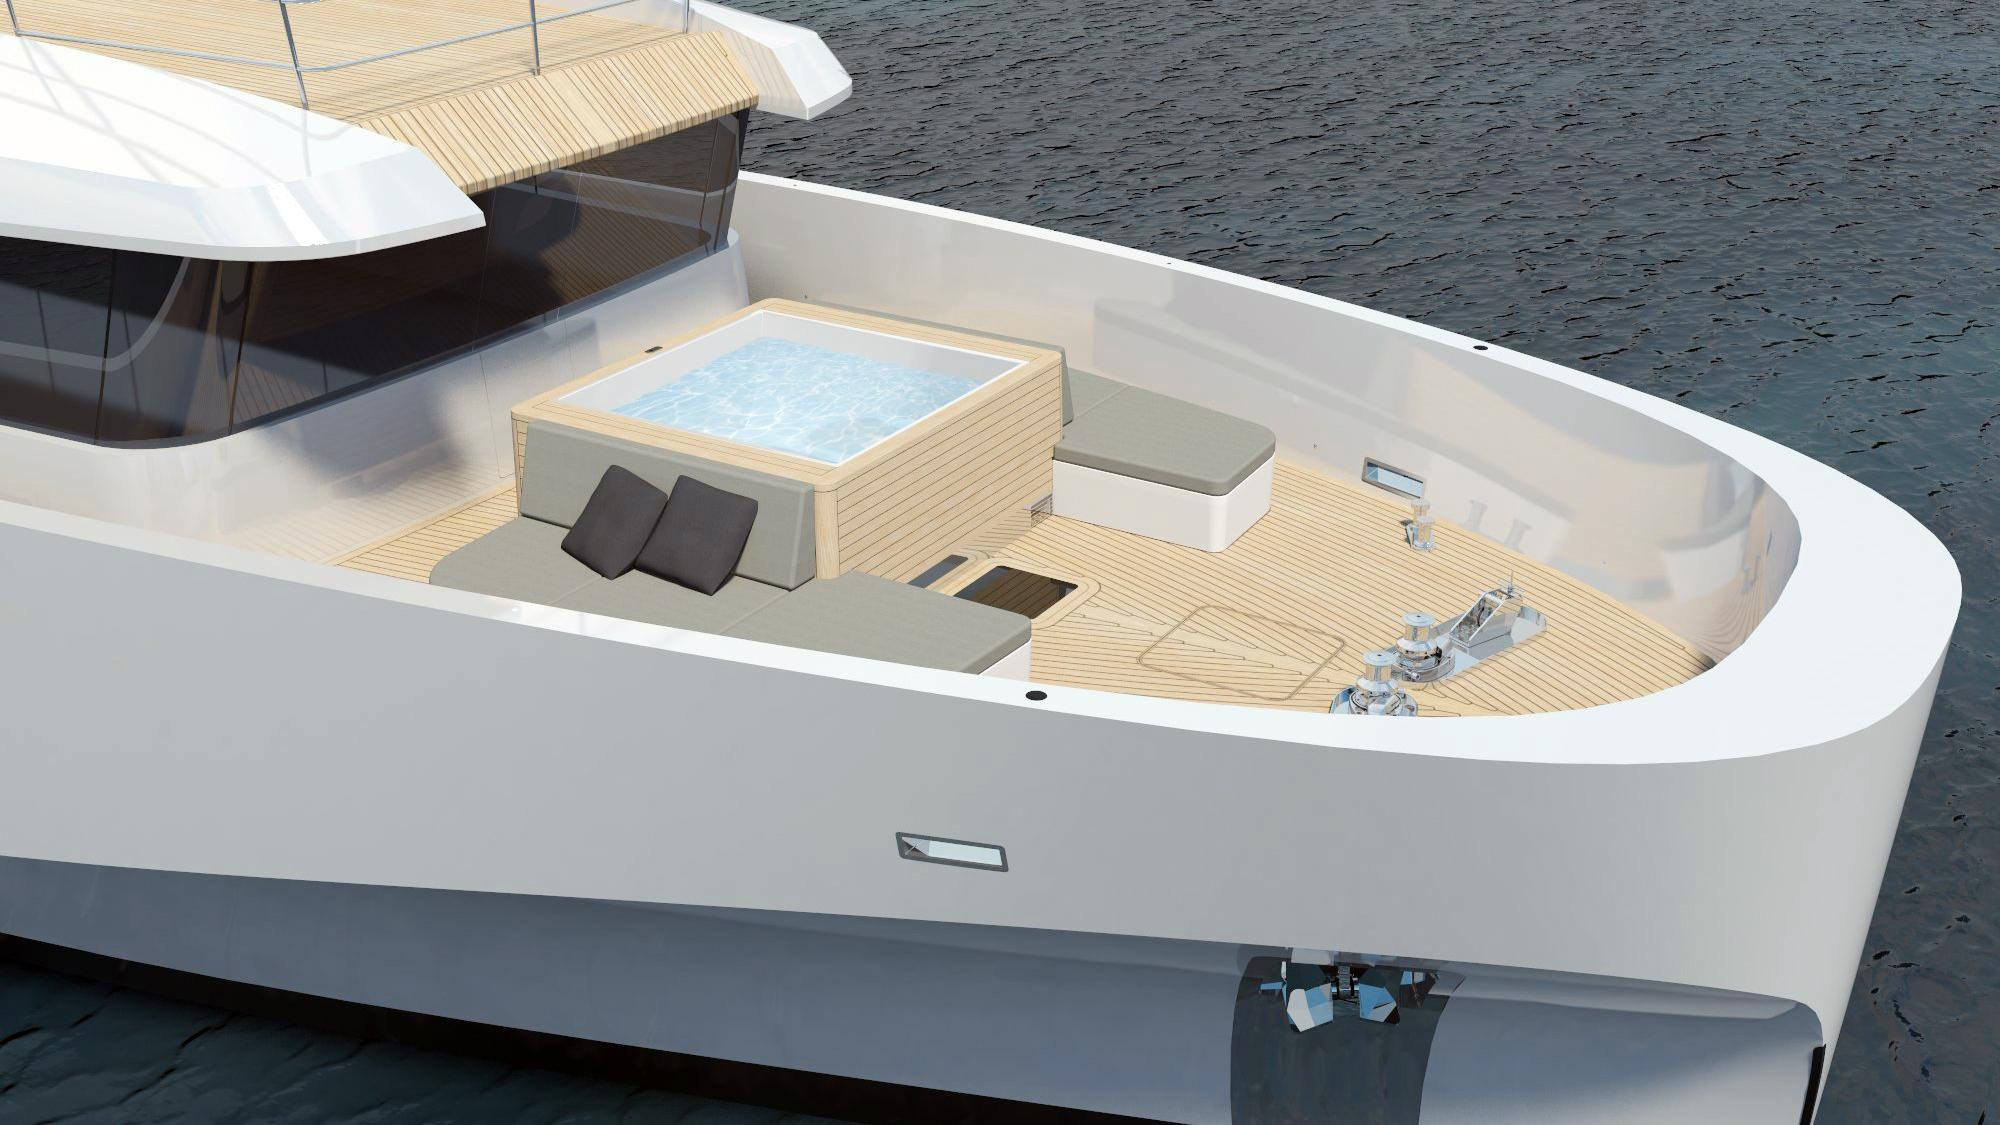 wally-casa-motor-yacht-2016-27m-foredeck-rendering